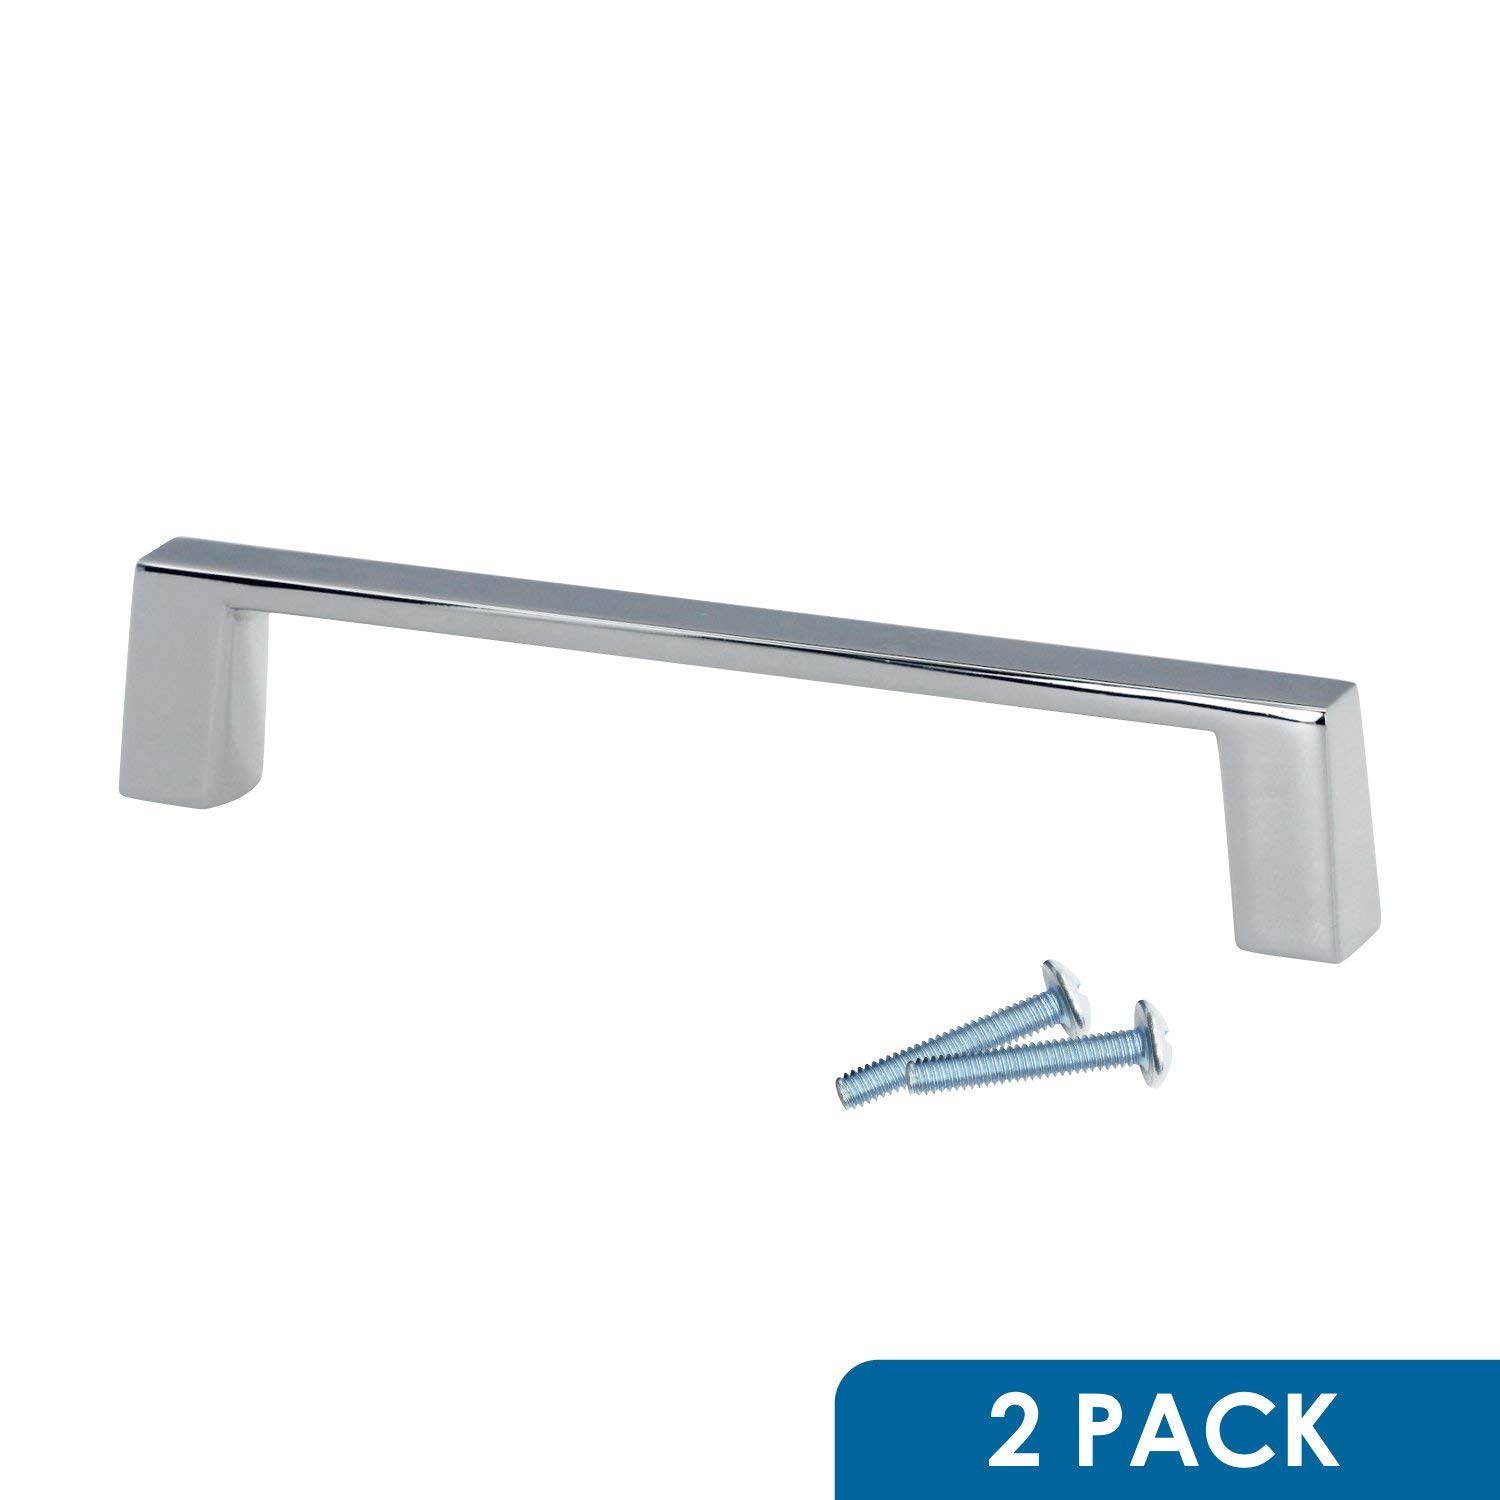 "2 Pack Rok Hardware 6"" (152mm) Hole Sleek Square Style Chrome Kitchen Vanity Dresser Cabinet Pull Handle 6-3/8"" (161mm) Overall Length P701152CH"